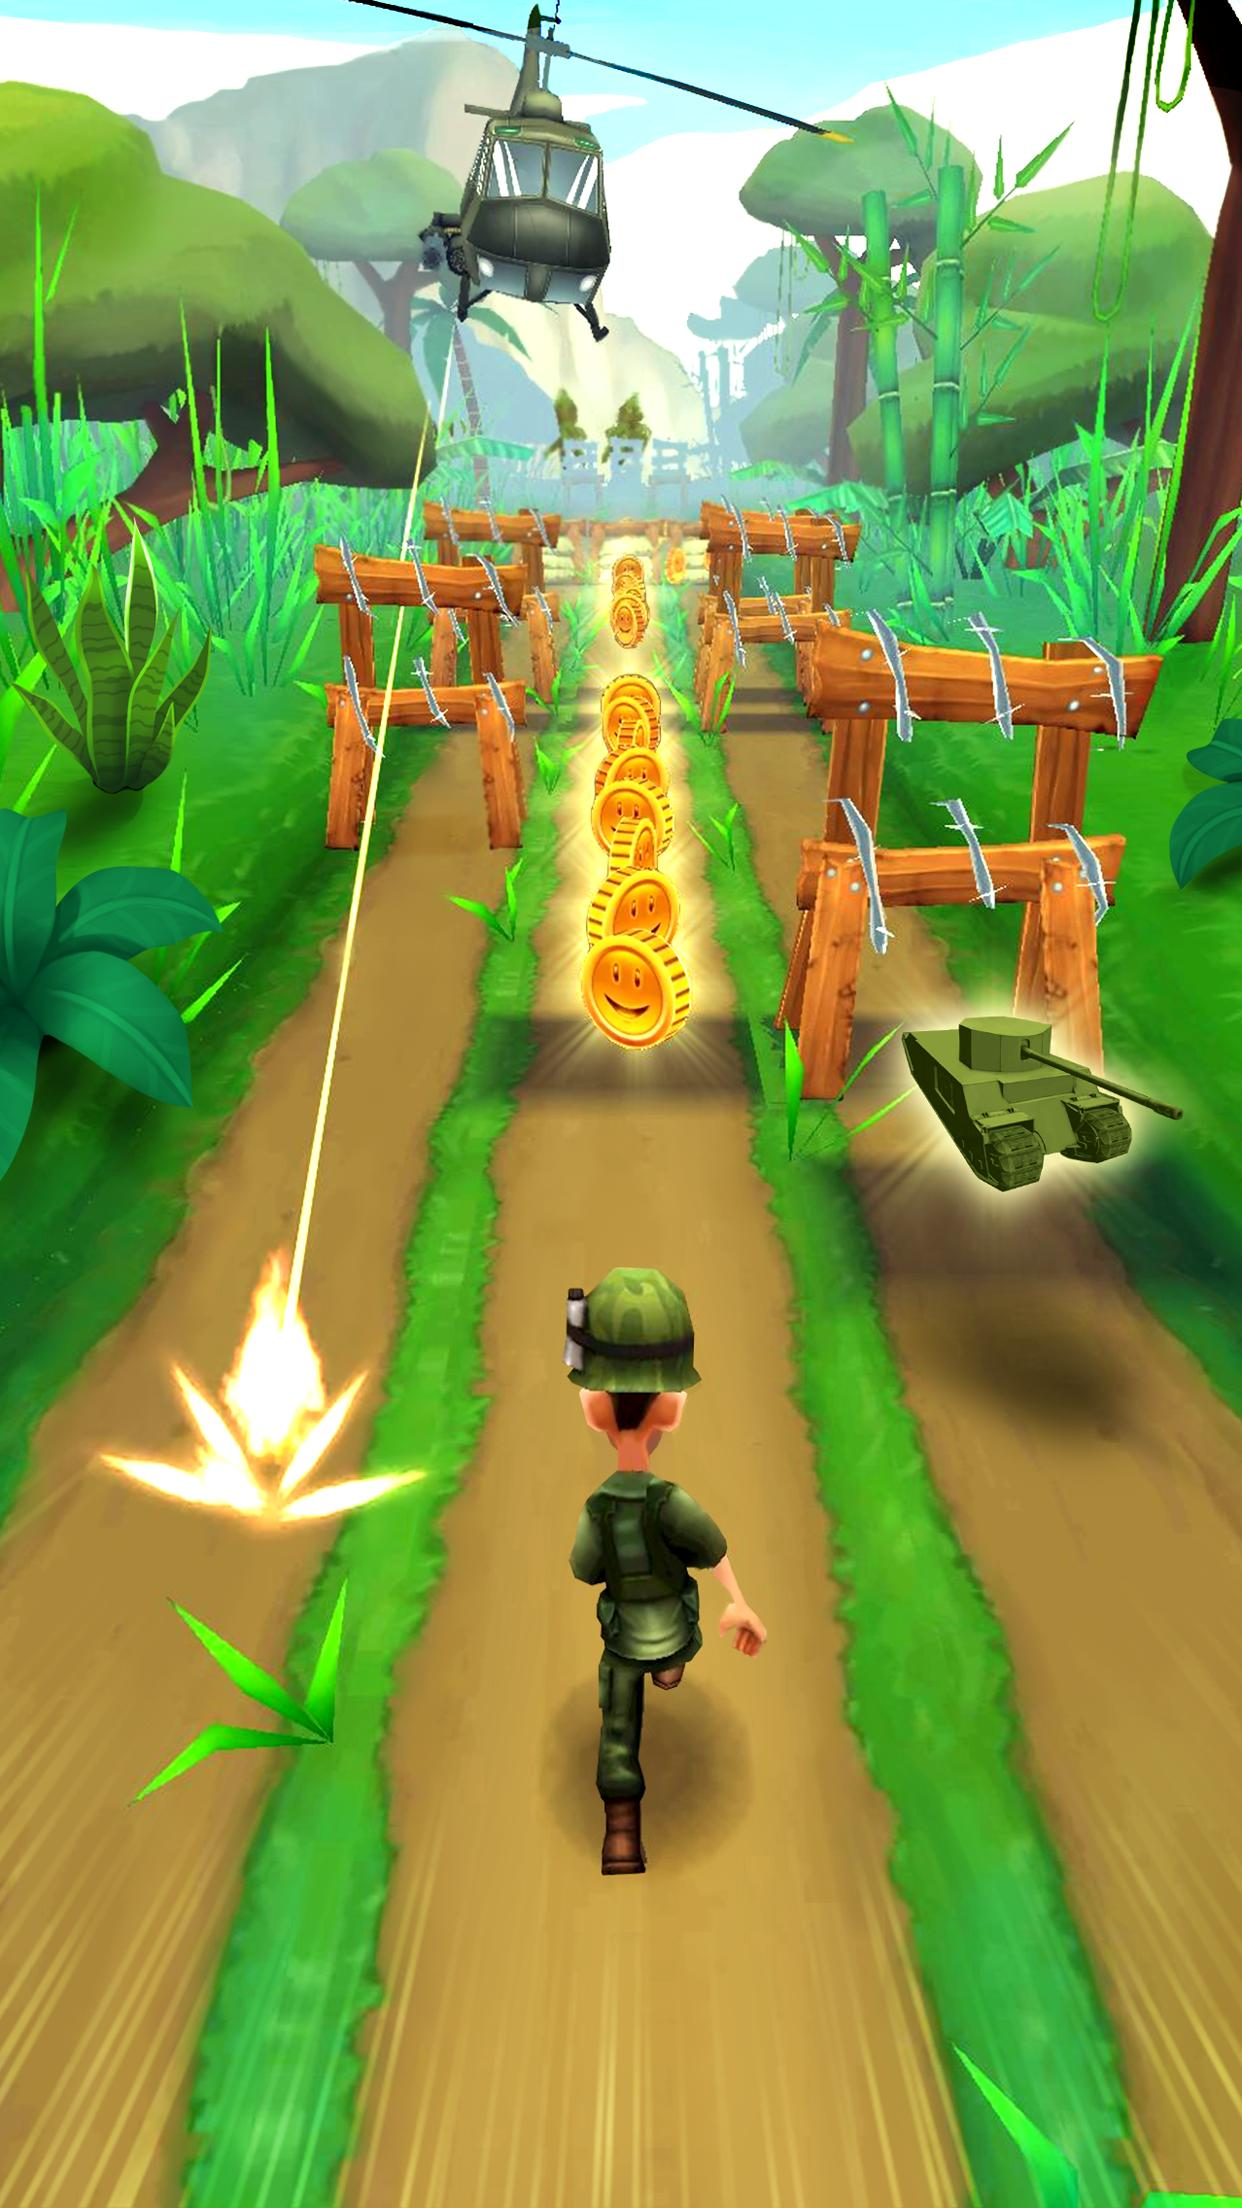 Run Forrest Run - New Games 2020: Running Games 1.6.4 Screenshot 4